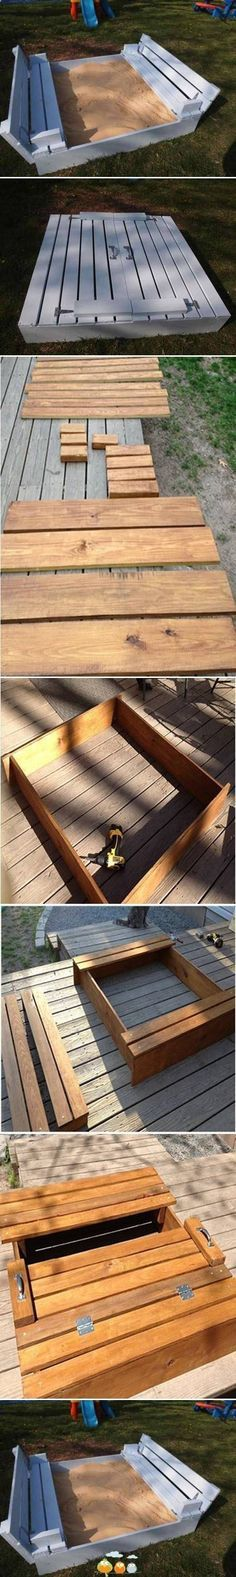 wood pallet sandbox, with bench seats that unfold to cover the sandbox...very cleaver.